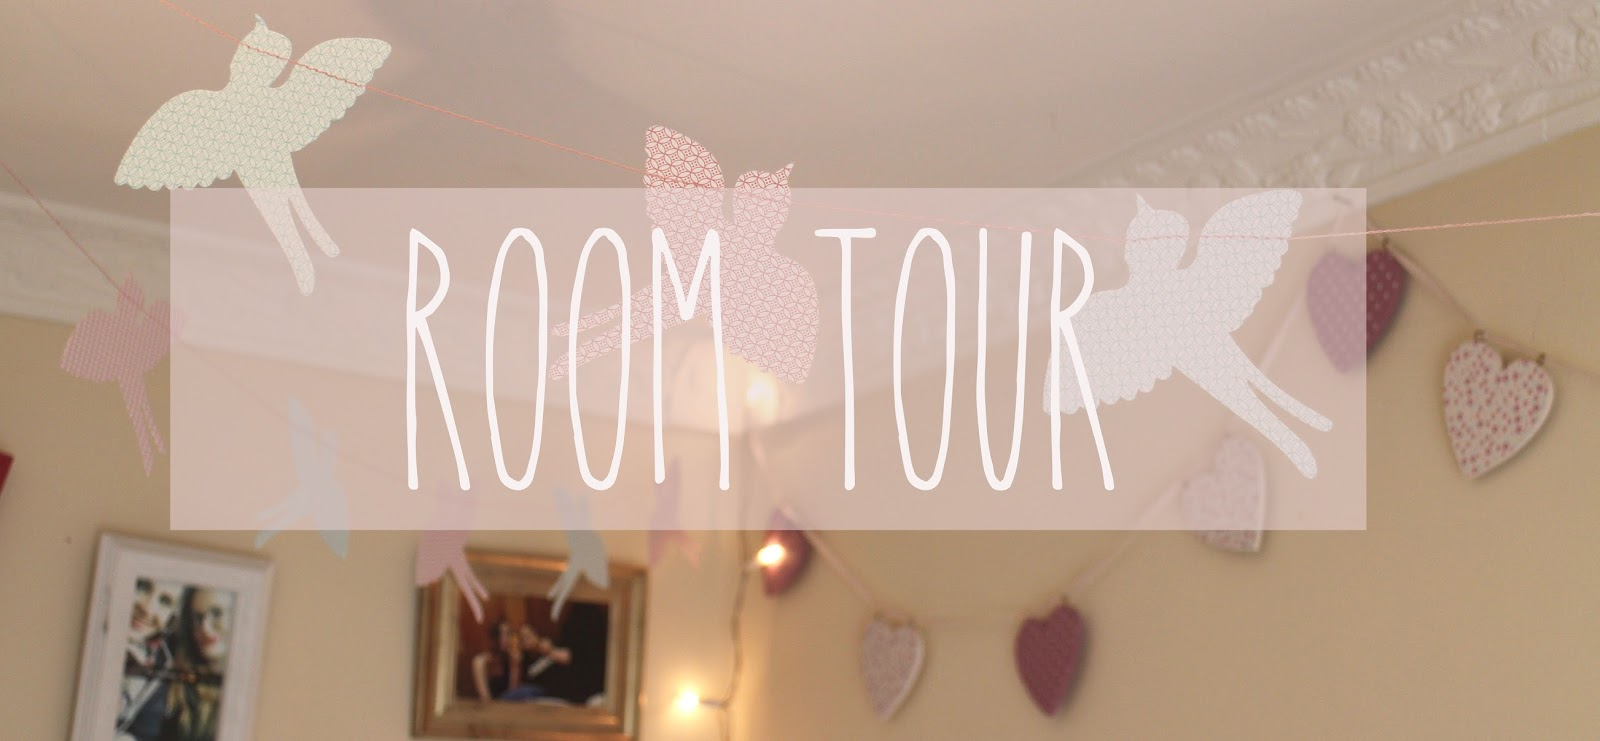 room tour blog post